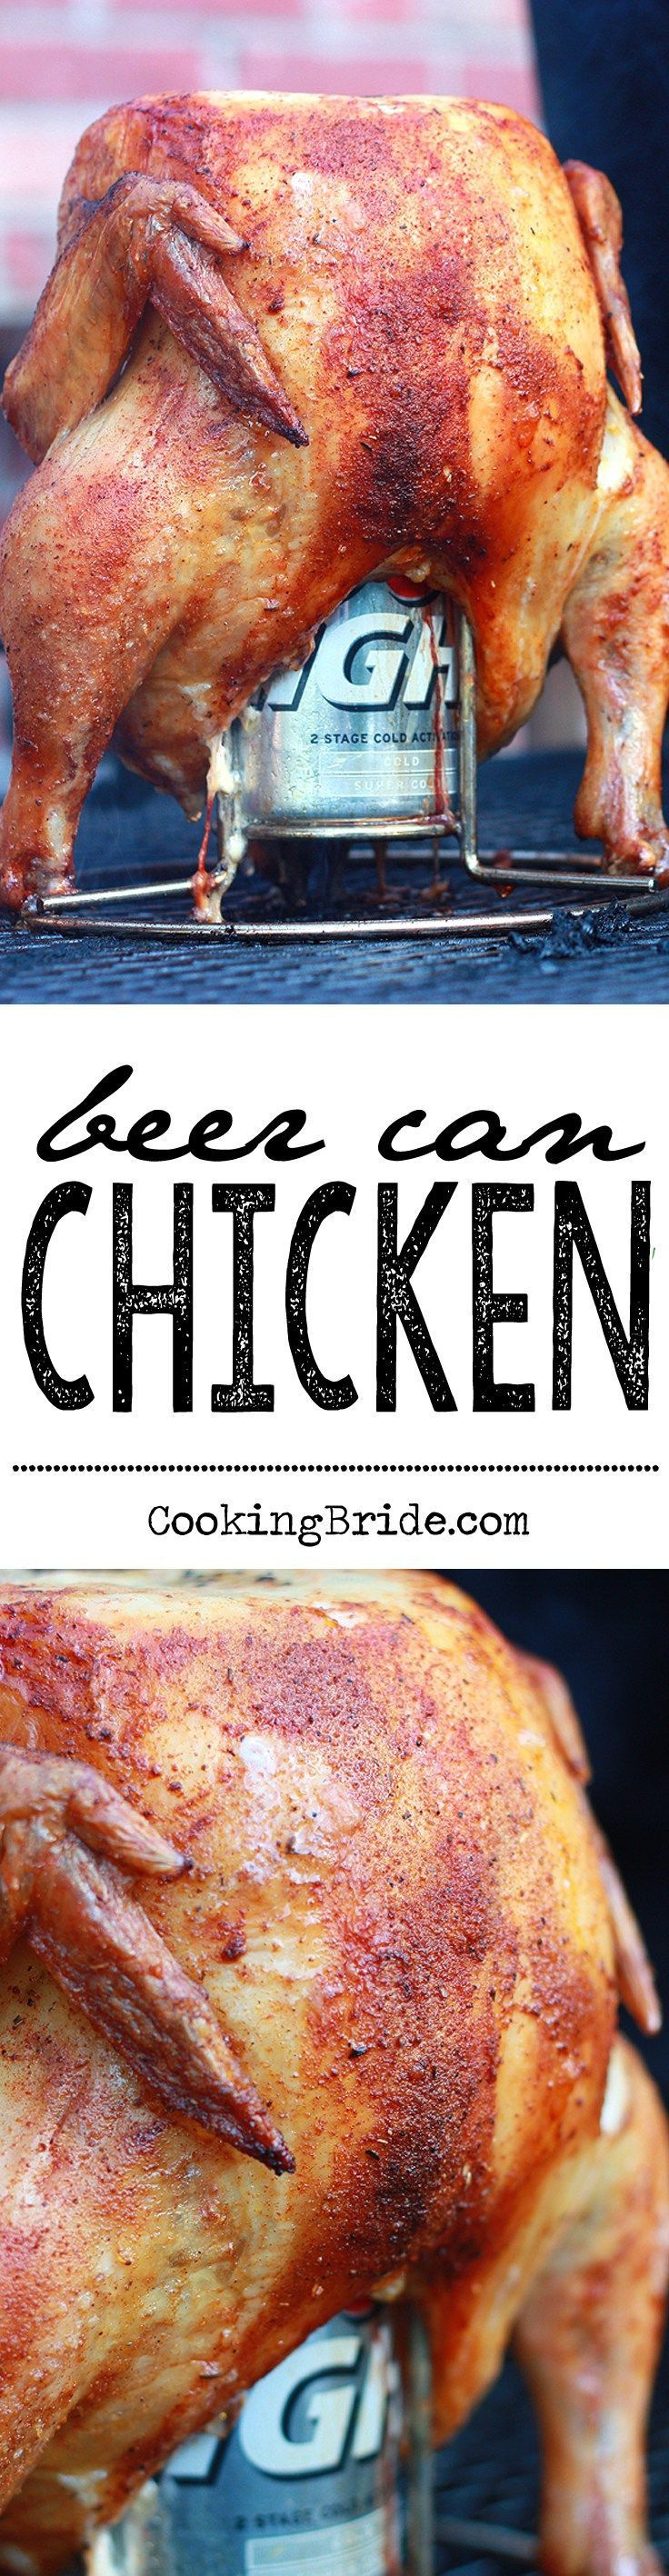 Tender and juicy beer can chicken recipe is seasoned with a blend of Cajun-inspired herbs and spices. Serve with drippings for maximum flavor. #Chicken #Grilling